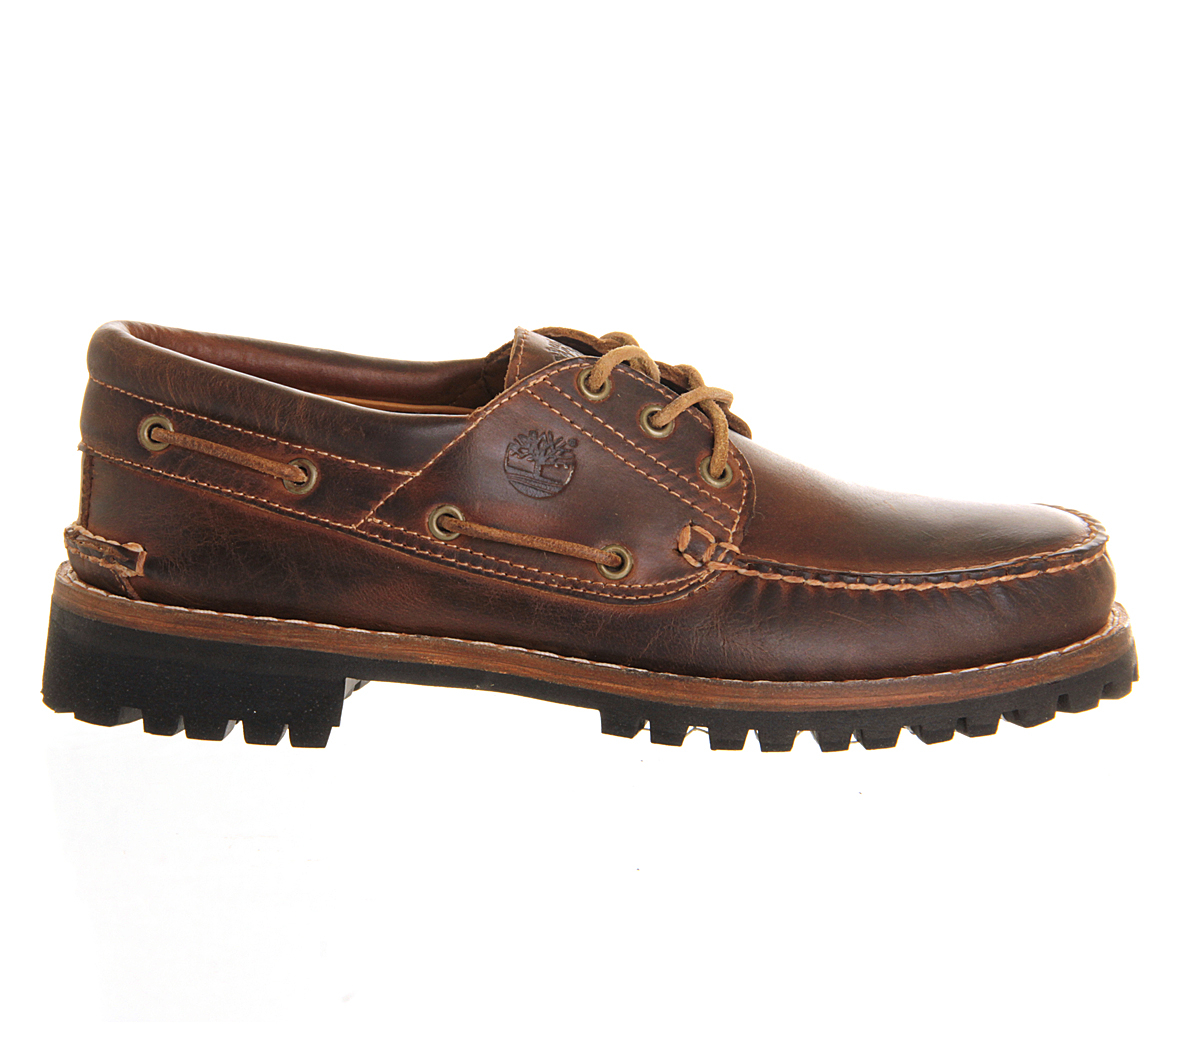 timberland heritage 3 eye boat shoe in brown for men lyst. Black Bedroom Furniture Sets. Home Design Ideas